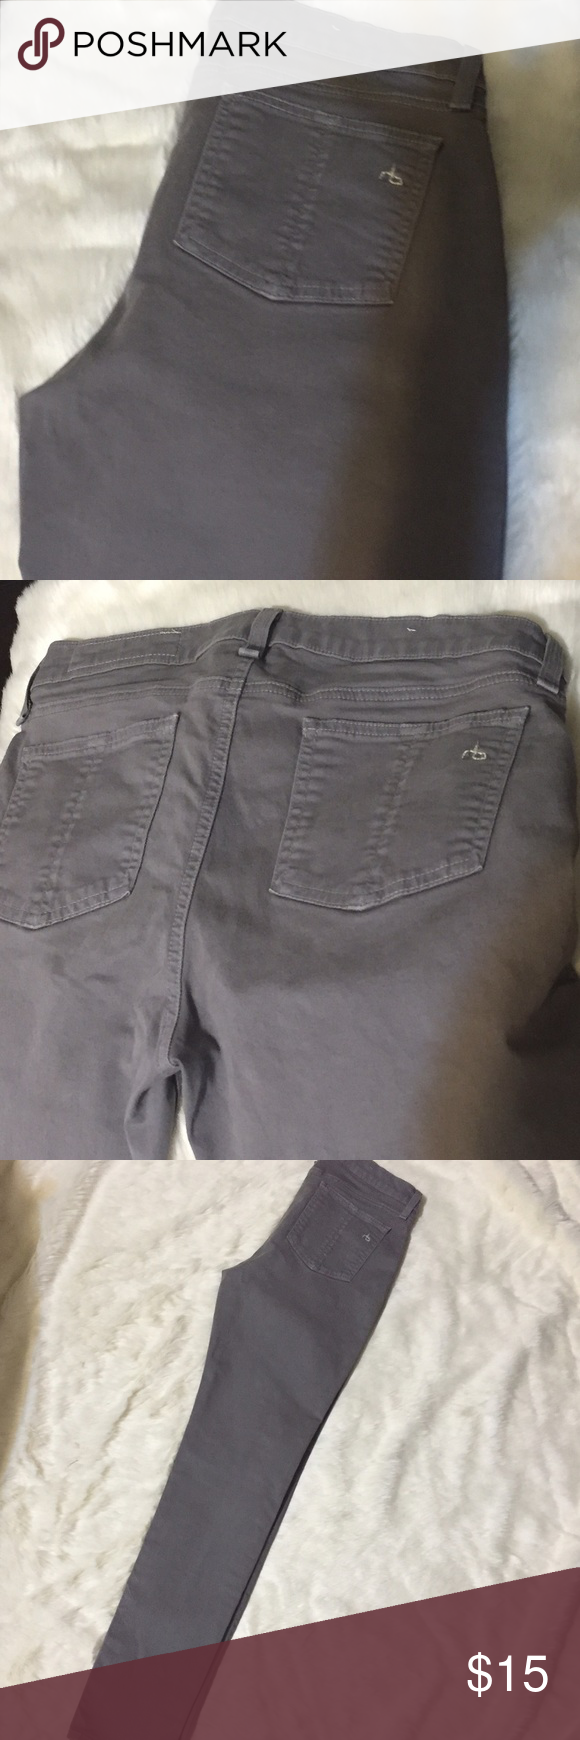 """Gray & navy blue rag & bone stretch legging jeans 2 pairs of jeans ONLY $50 !!!                                            Gray rag & bone stretch jean size 29...length 39""""inseam 29... Oil stain on right upper thigh as shown in pic.. Can be used to make distressed look or cover with a blazer.. 96% cotton 4% roica...                                             Navy blue coated jeans $220 retail!!! condition like new !!! Inseam 30"""" length 40"""" rag & bone Jeans Skinny"""